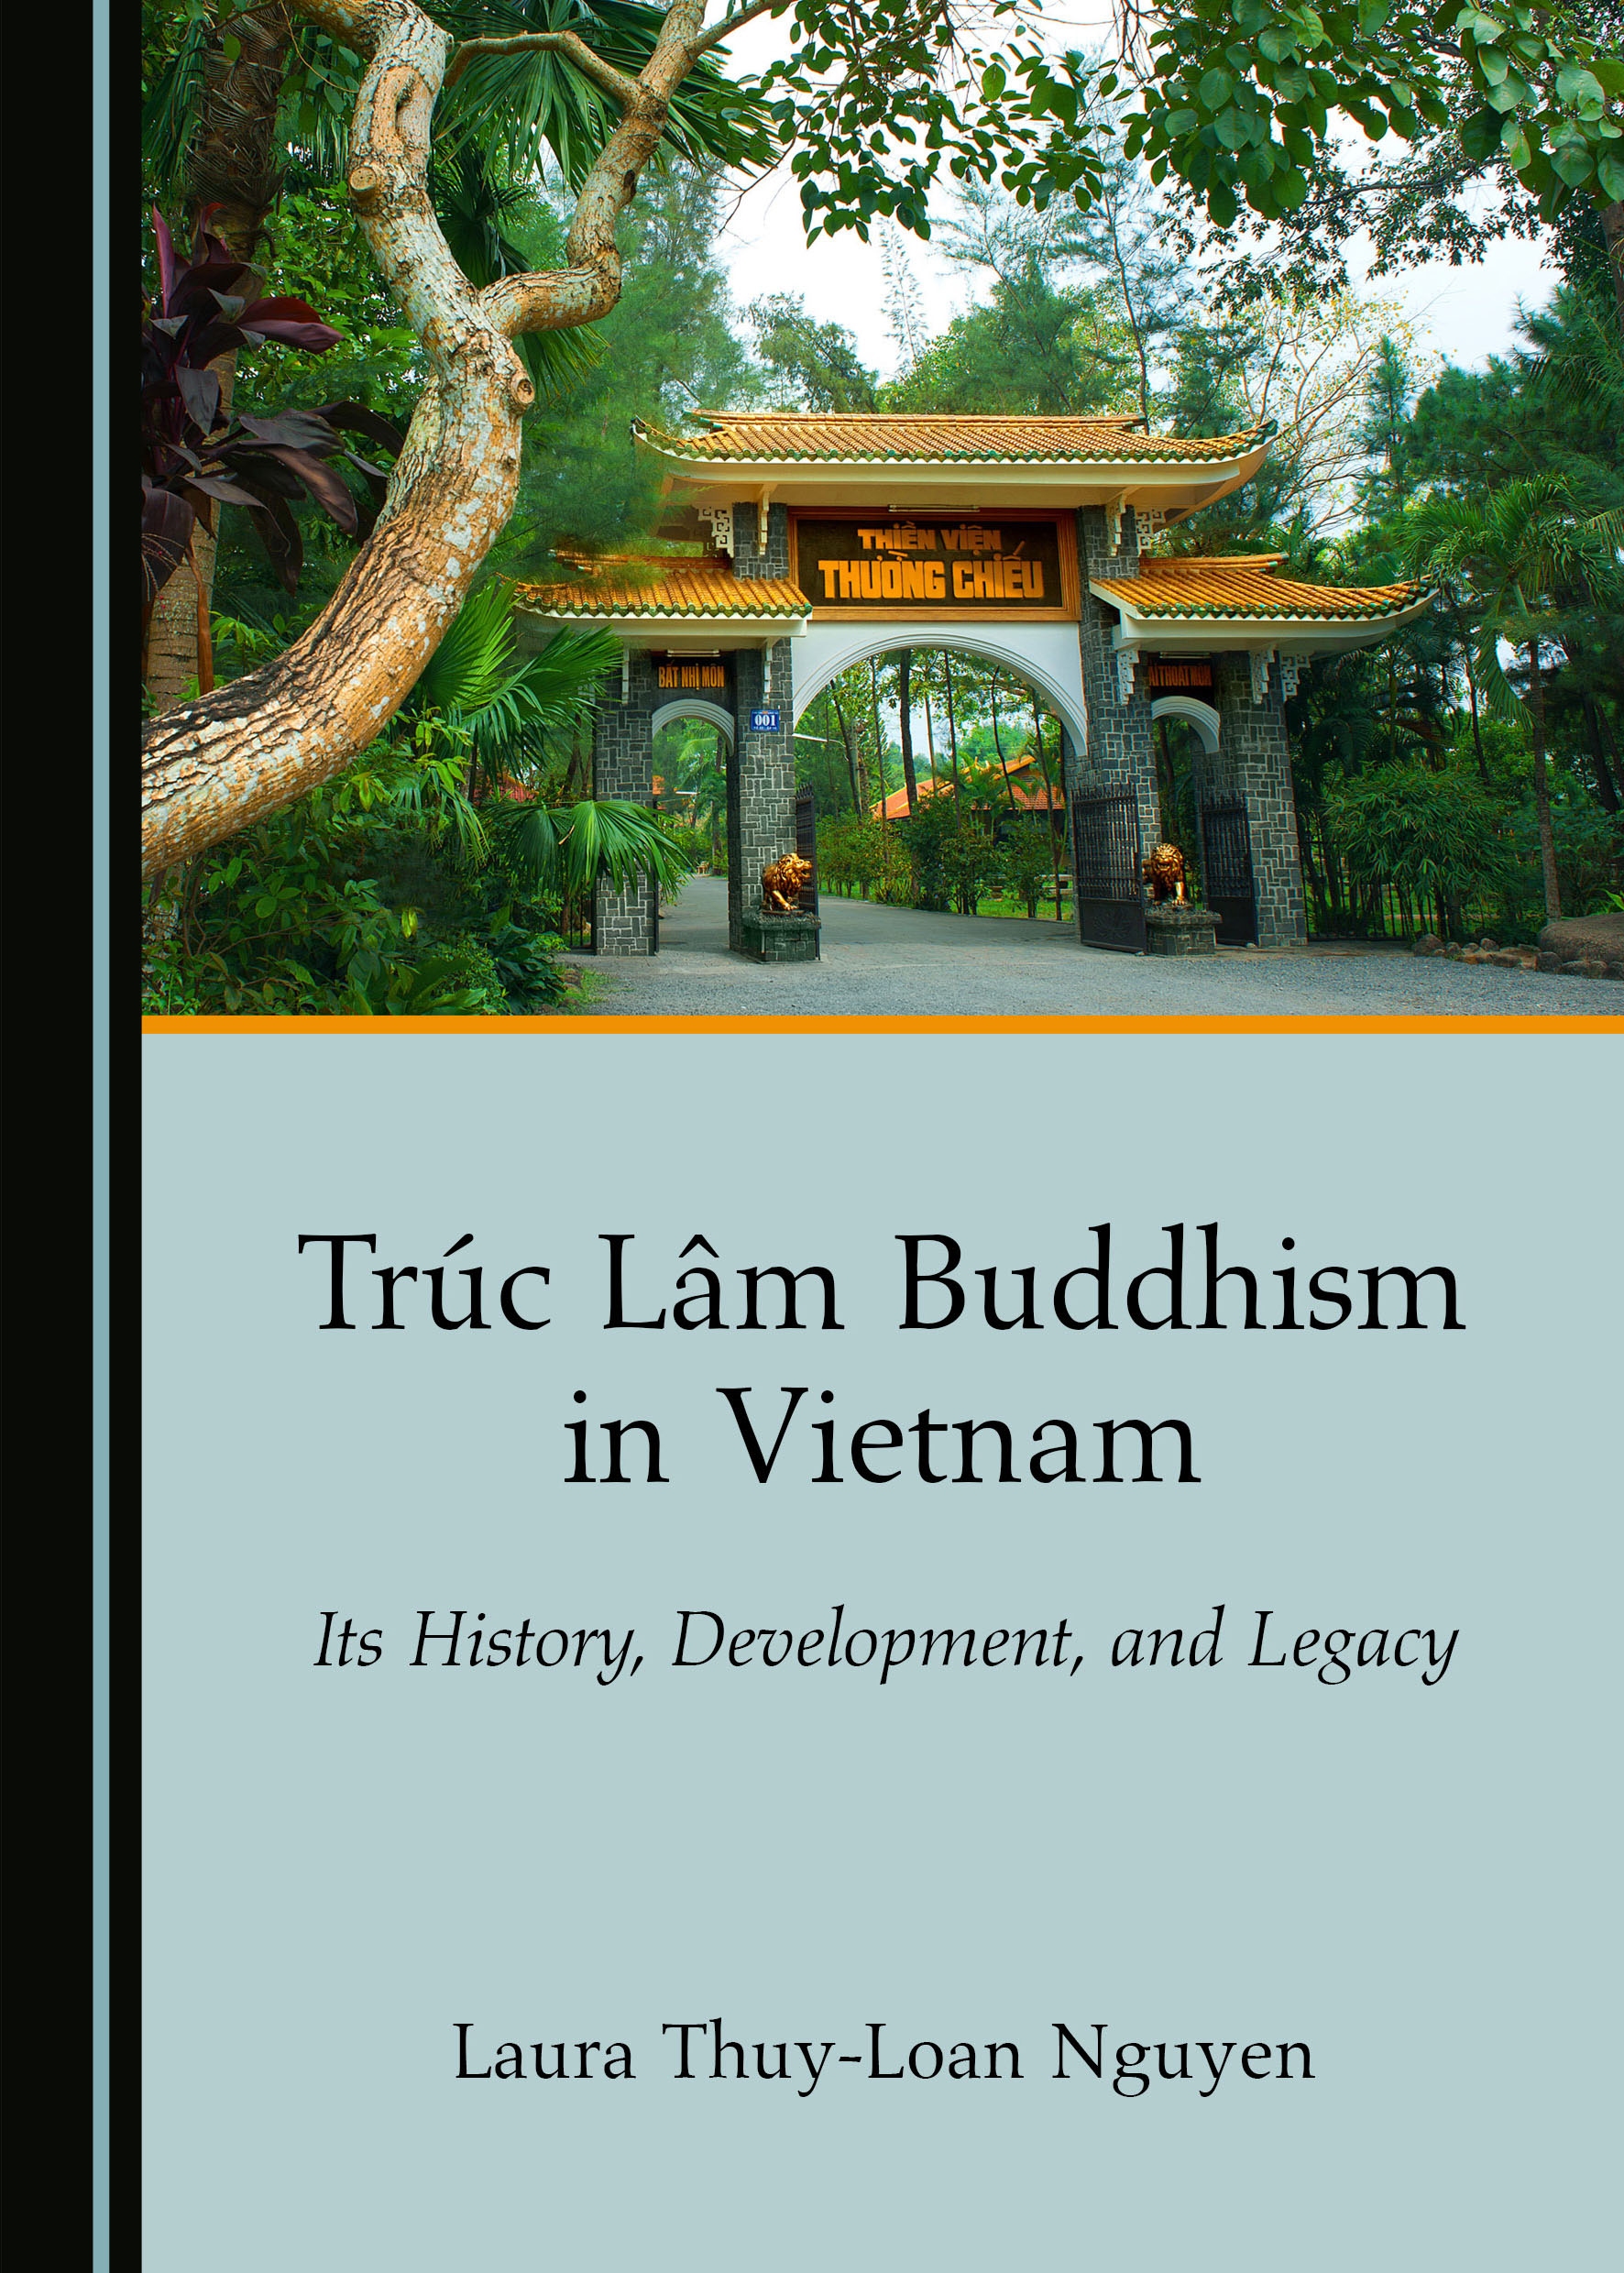 Trúc Lâm Buddhism in Vietnam: Its History, Development, and Legacy